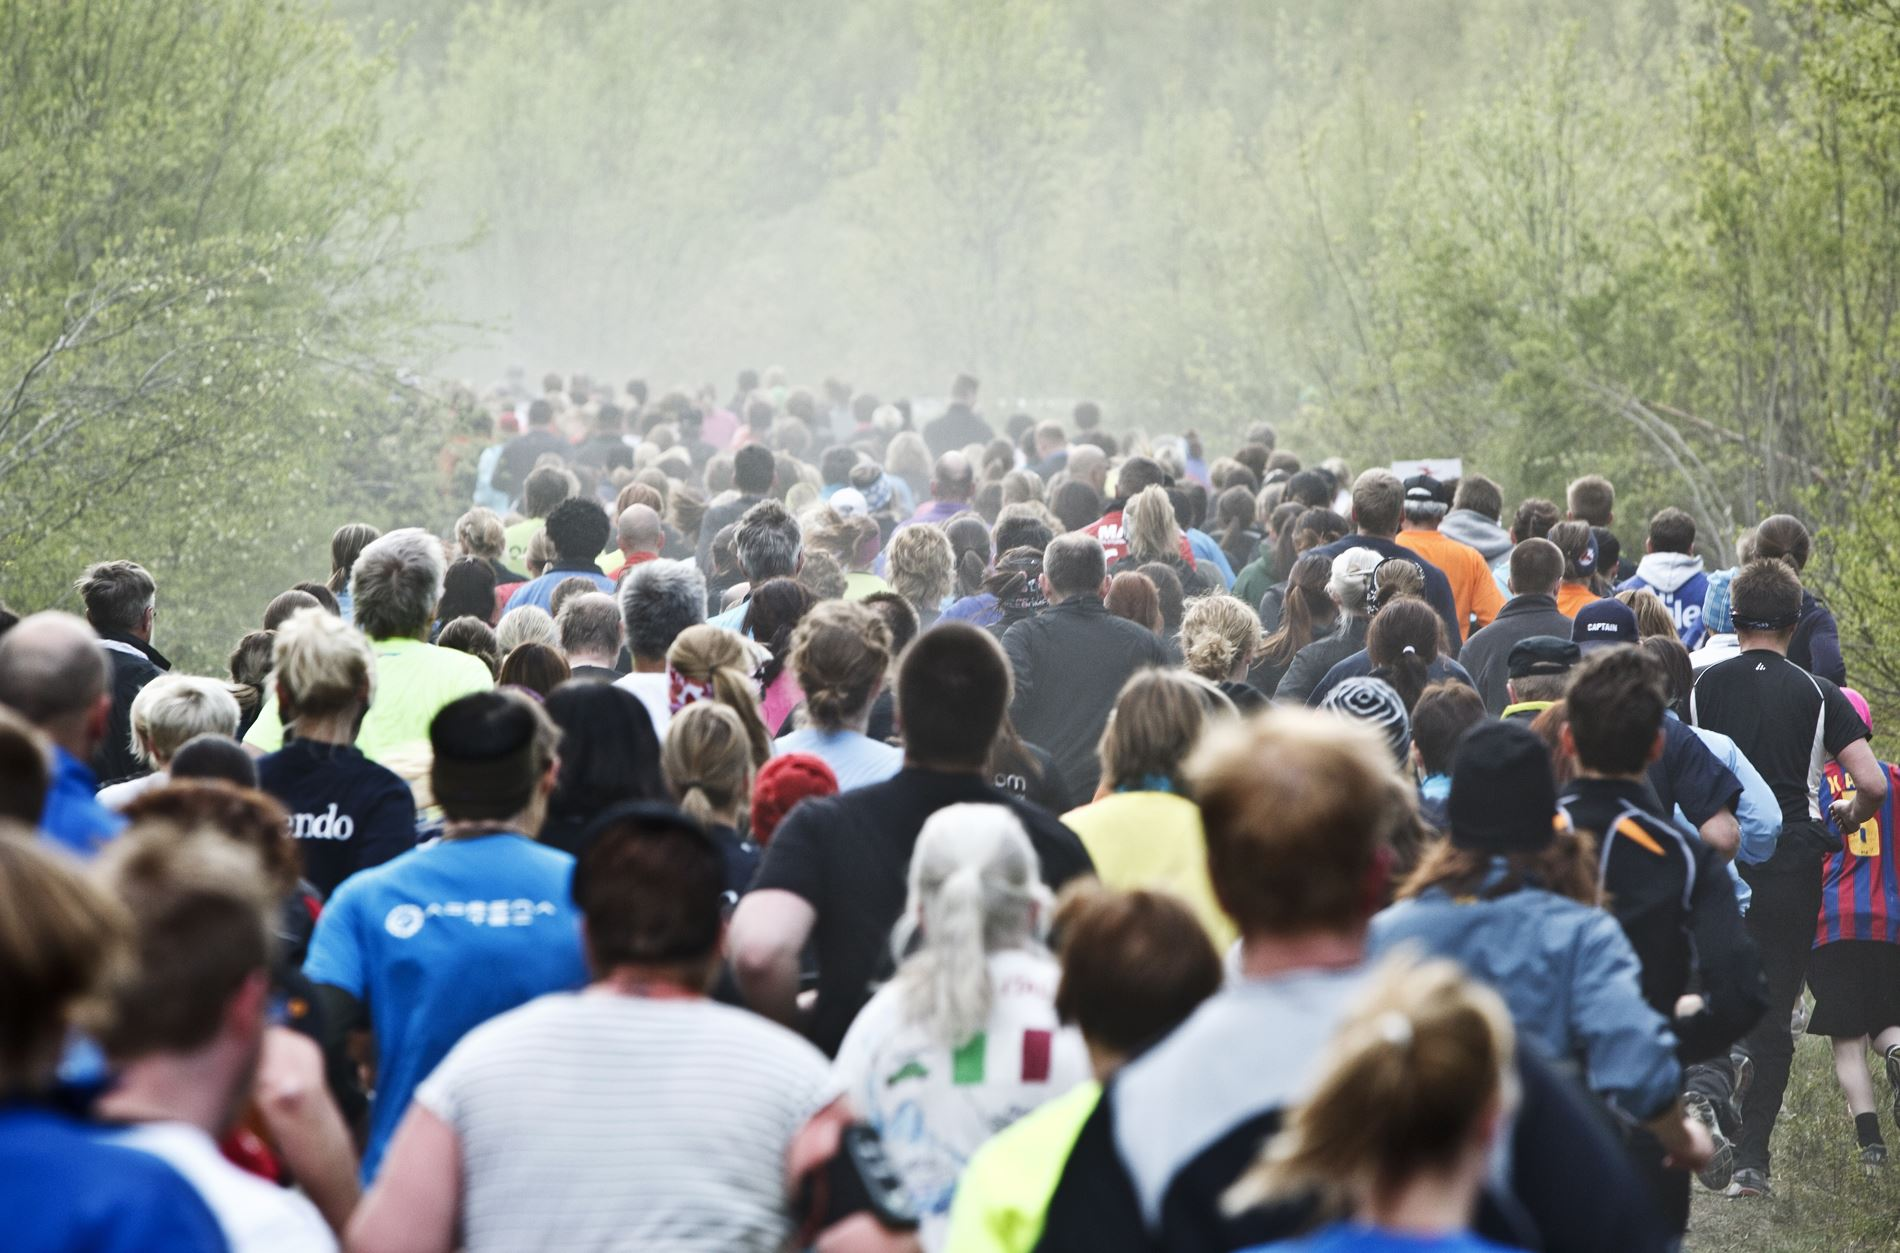 """Blodomloppet - """"The Blood Circulation Race"""""""